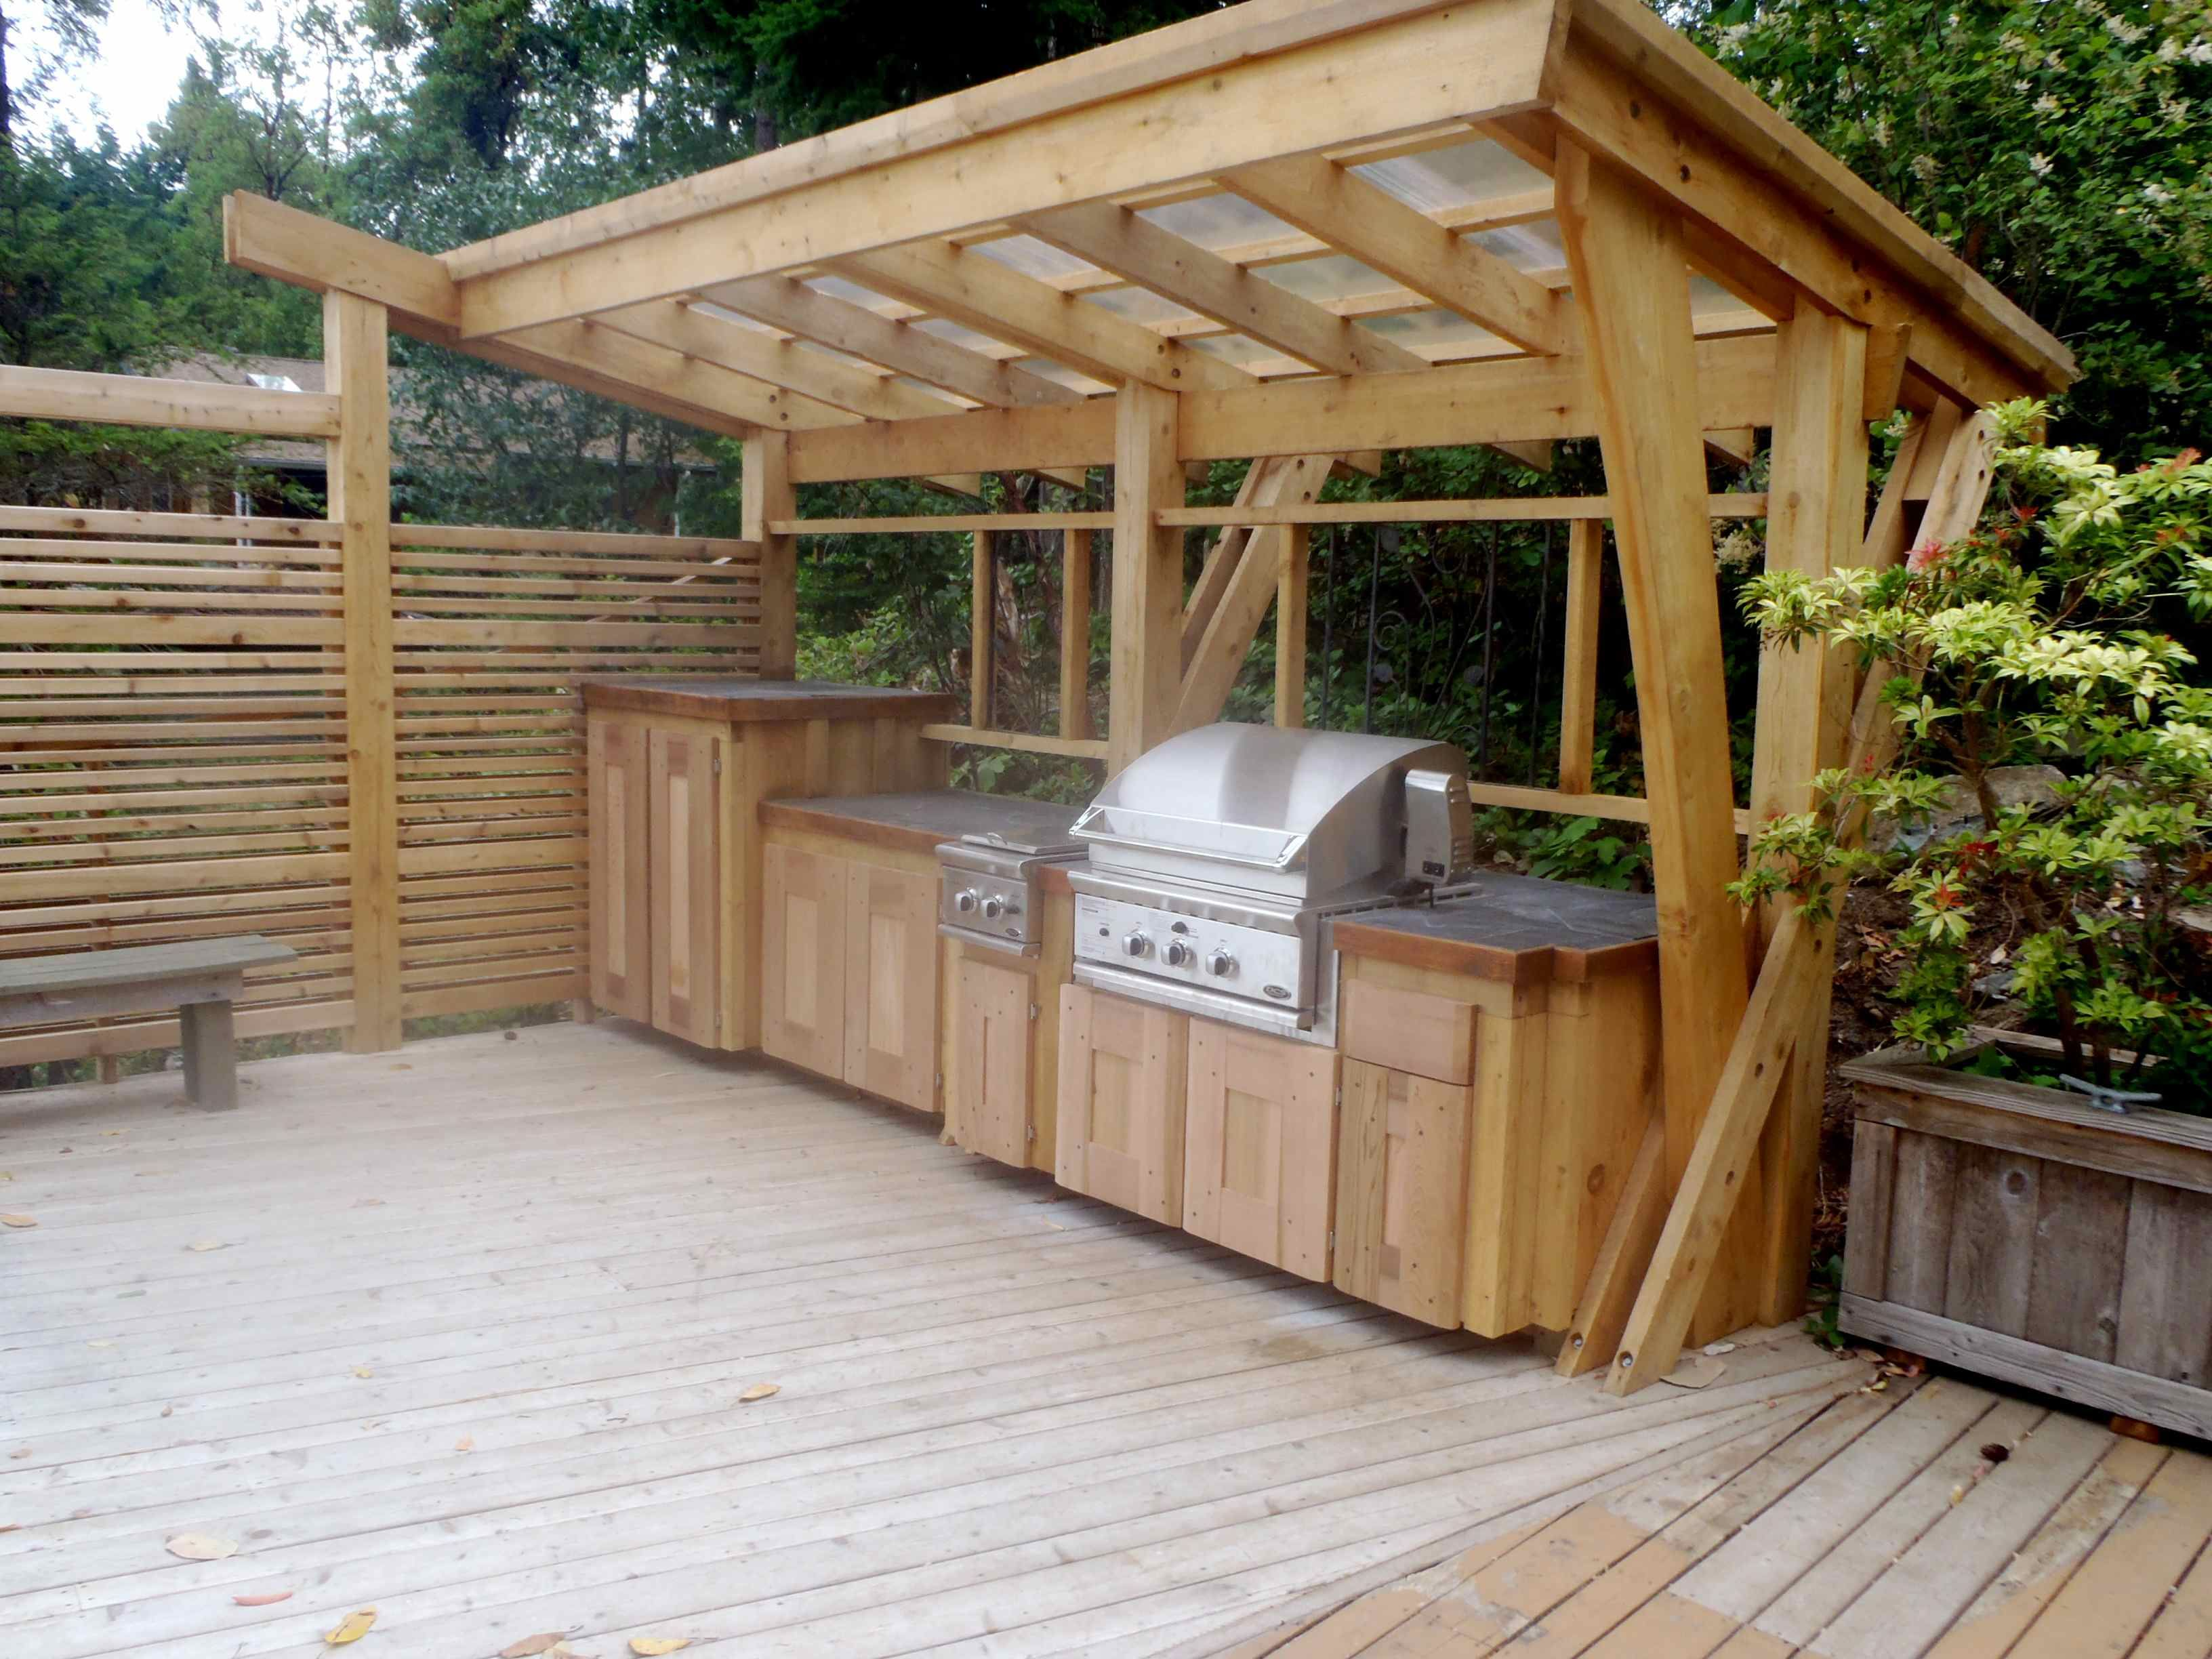 Outdoor kitchen cedar bbq cover outdoor for Outdoor kitchen cabinets plans